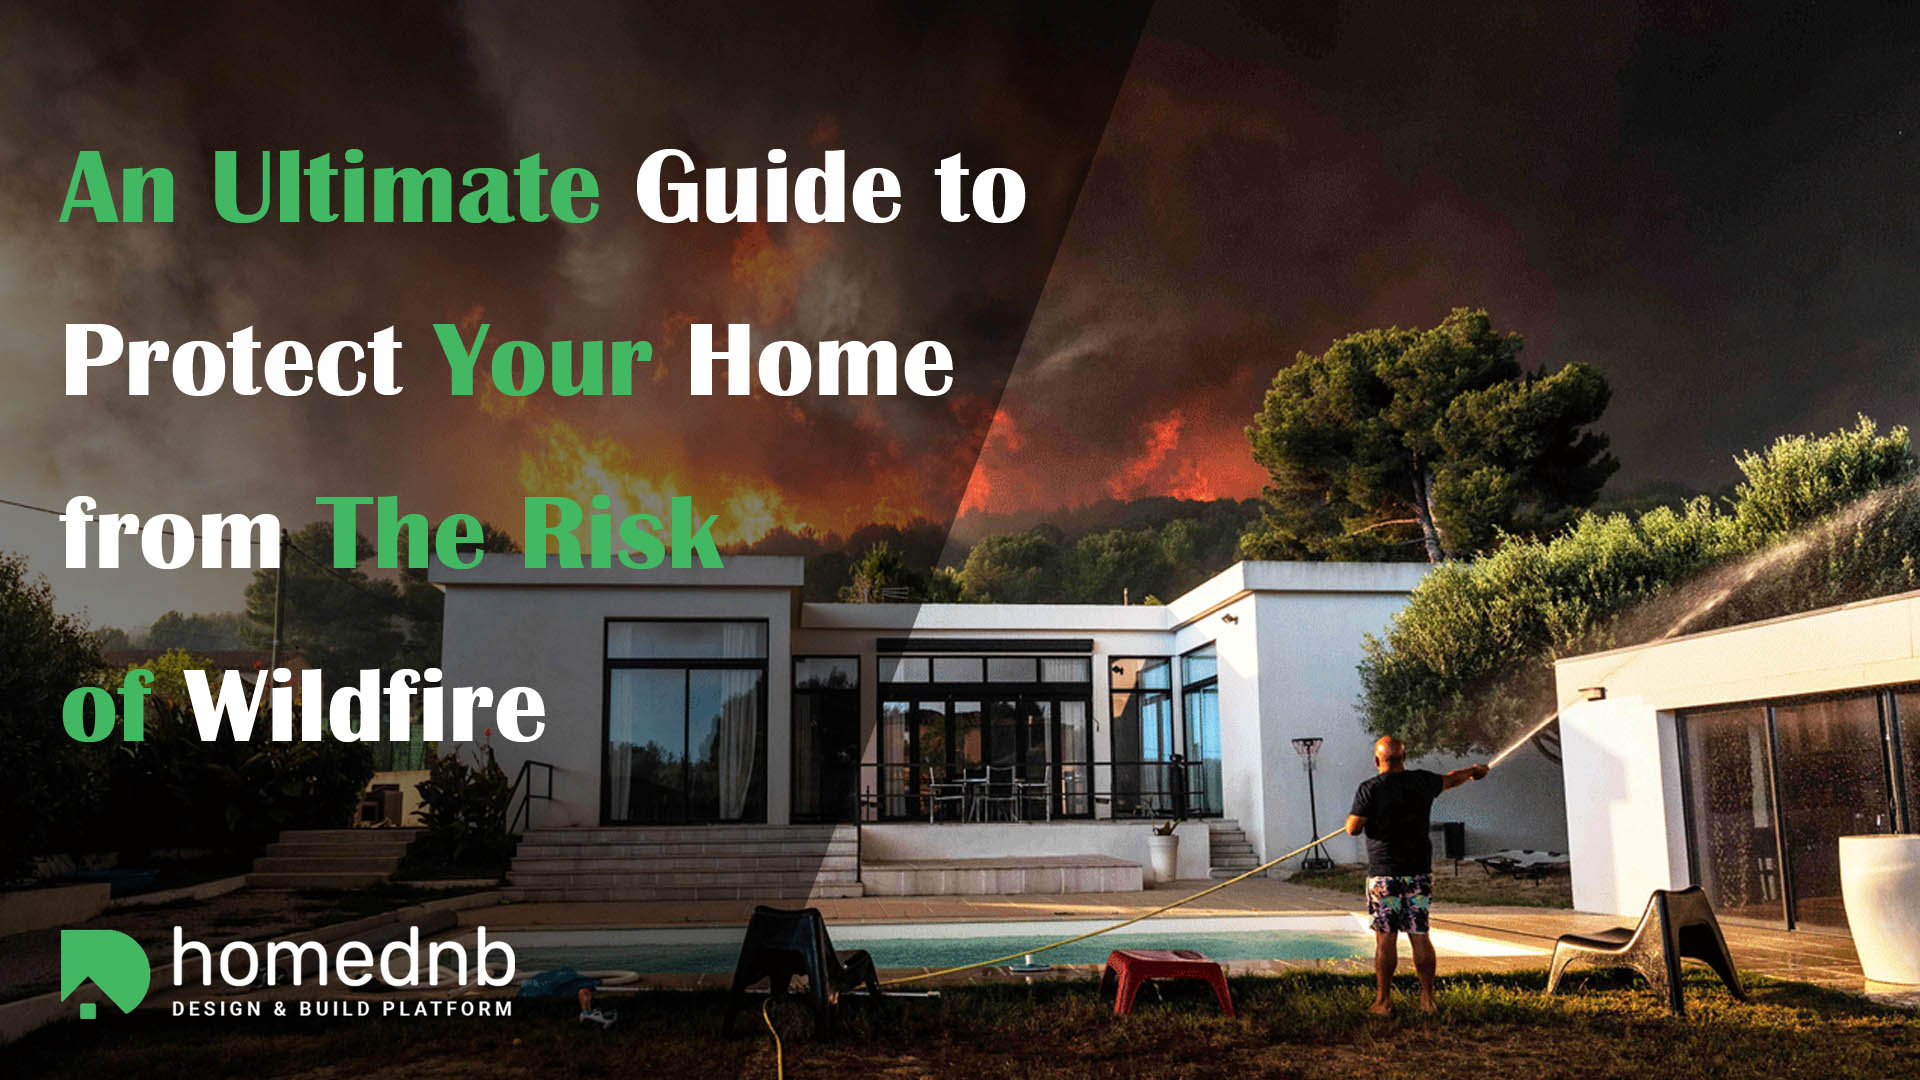 An Ultimate Guide to Protect Your Home from The Risk of Wildfire